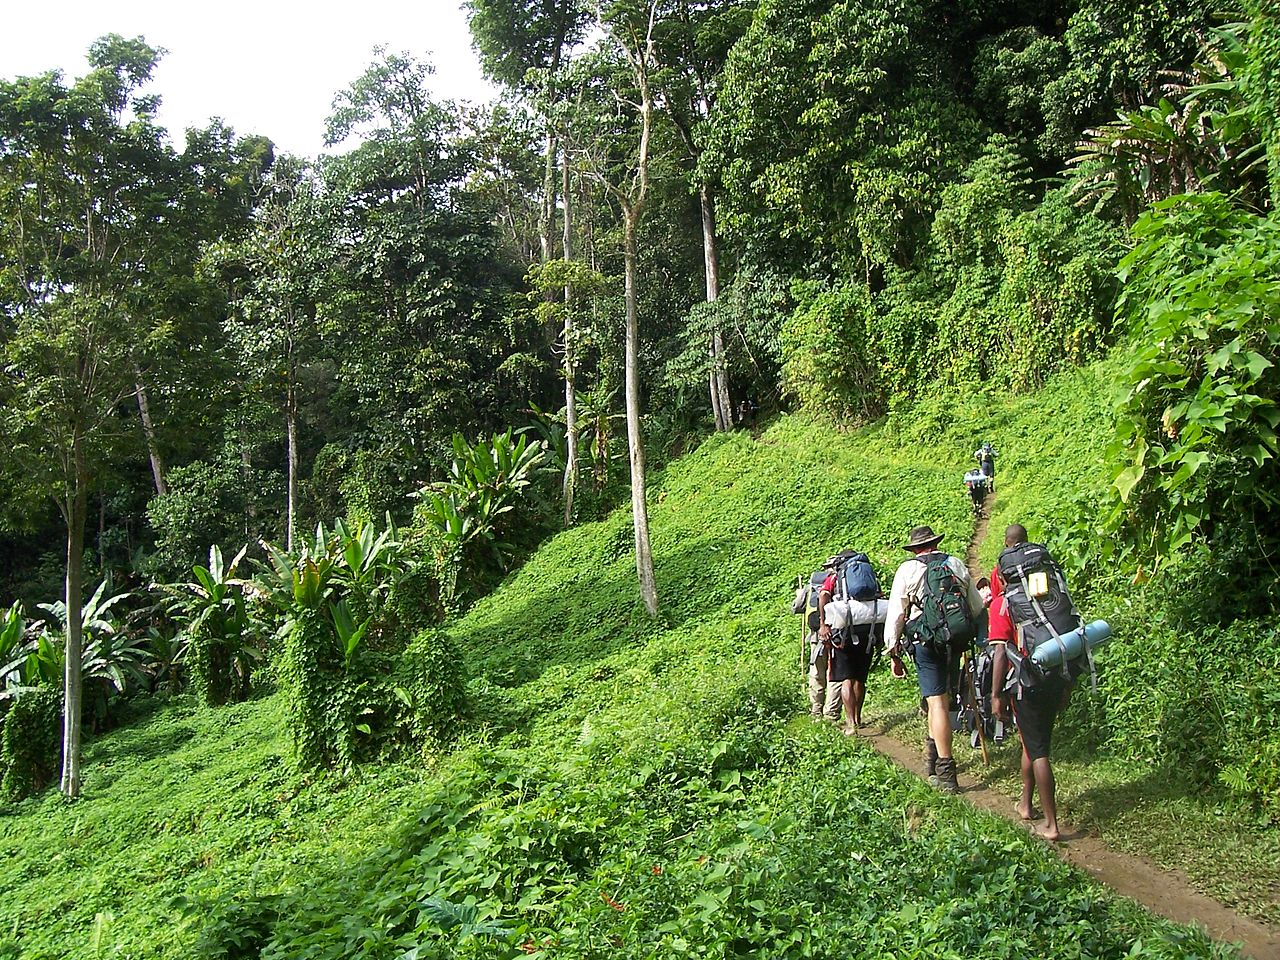 Kokoda Trail by Luke Brindley Wikimedia Commons